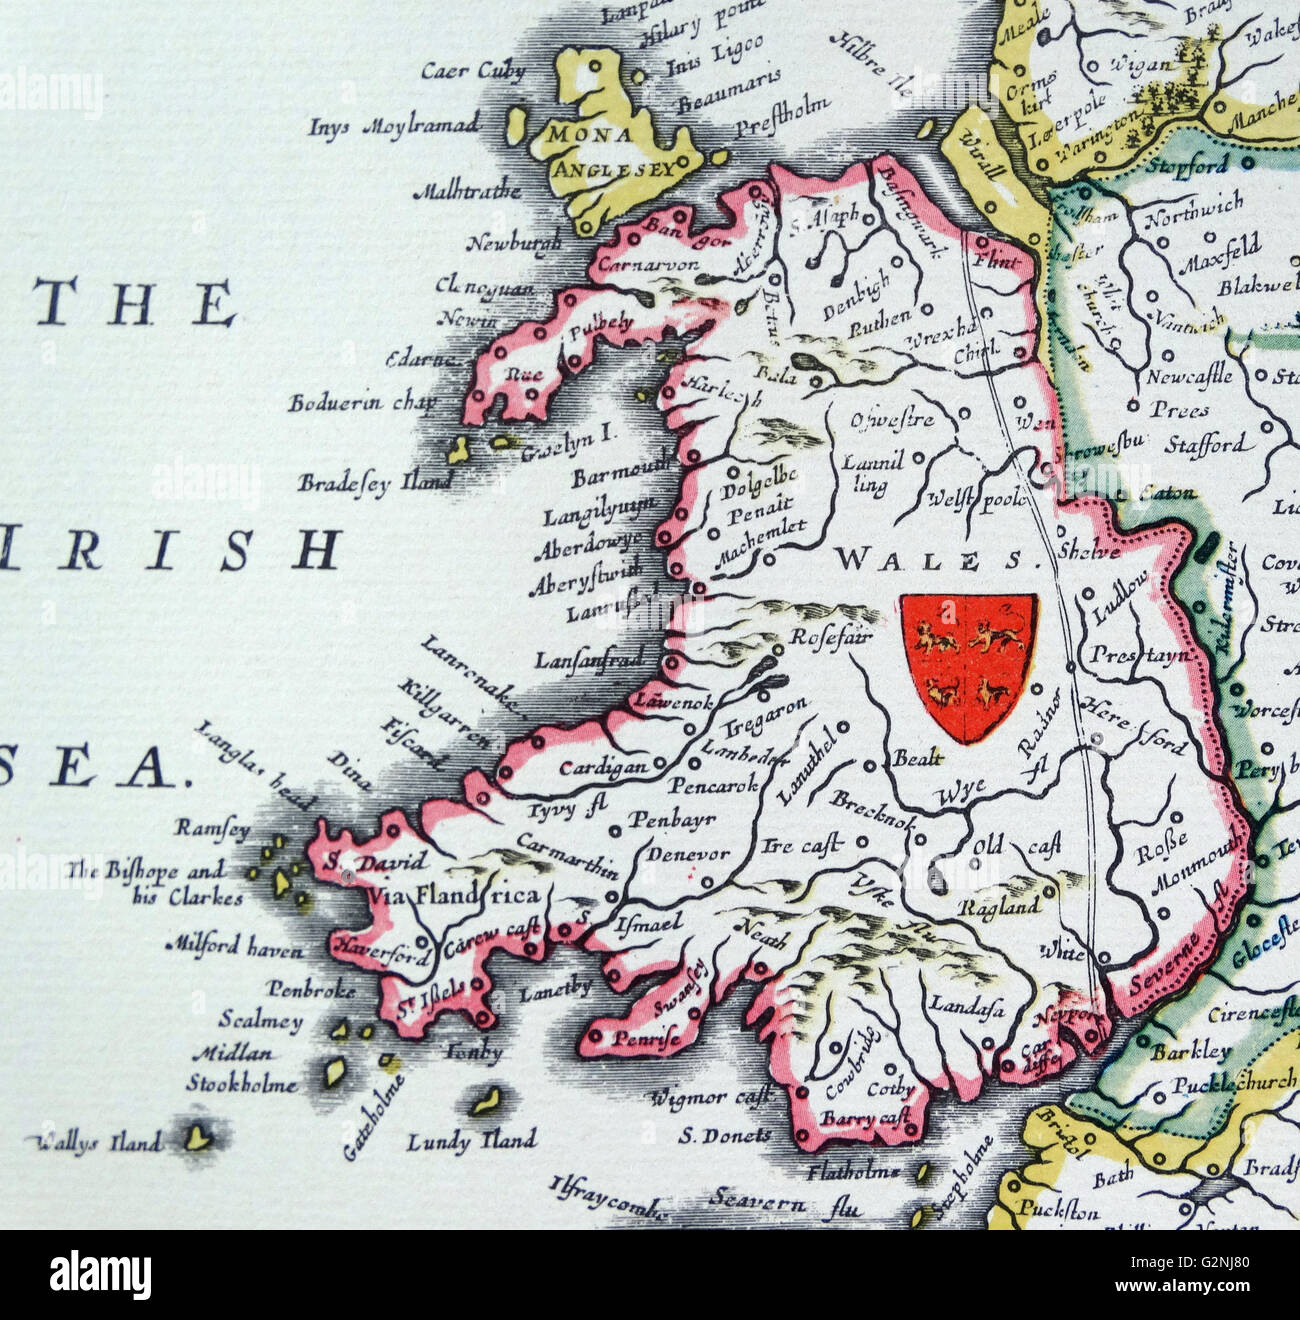 Shield of Wales, from the Heptarchy; a collective name applied to the Anglo-Saxon kingdoms of south, east, and central England during late antiquity and the early Middle Ages, Detail from an antique map of Britain, by the Dutch cartographer Willem Blaeu in Atlas Novus (Amsterdam 1635) Stock Photo